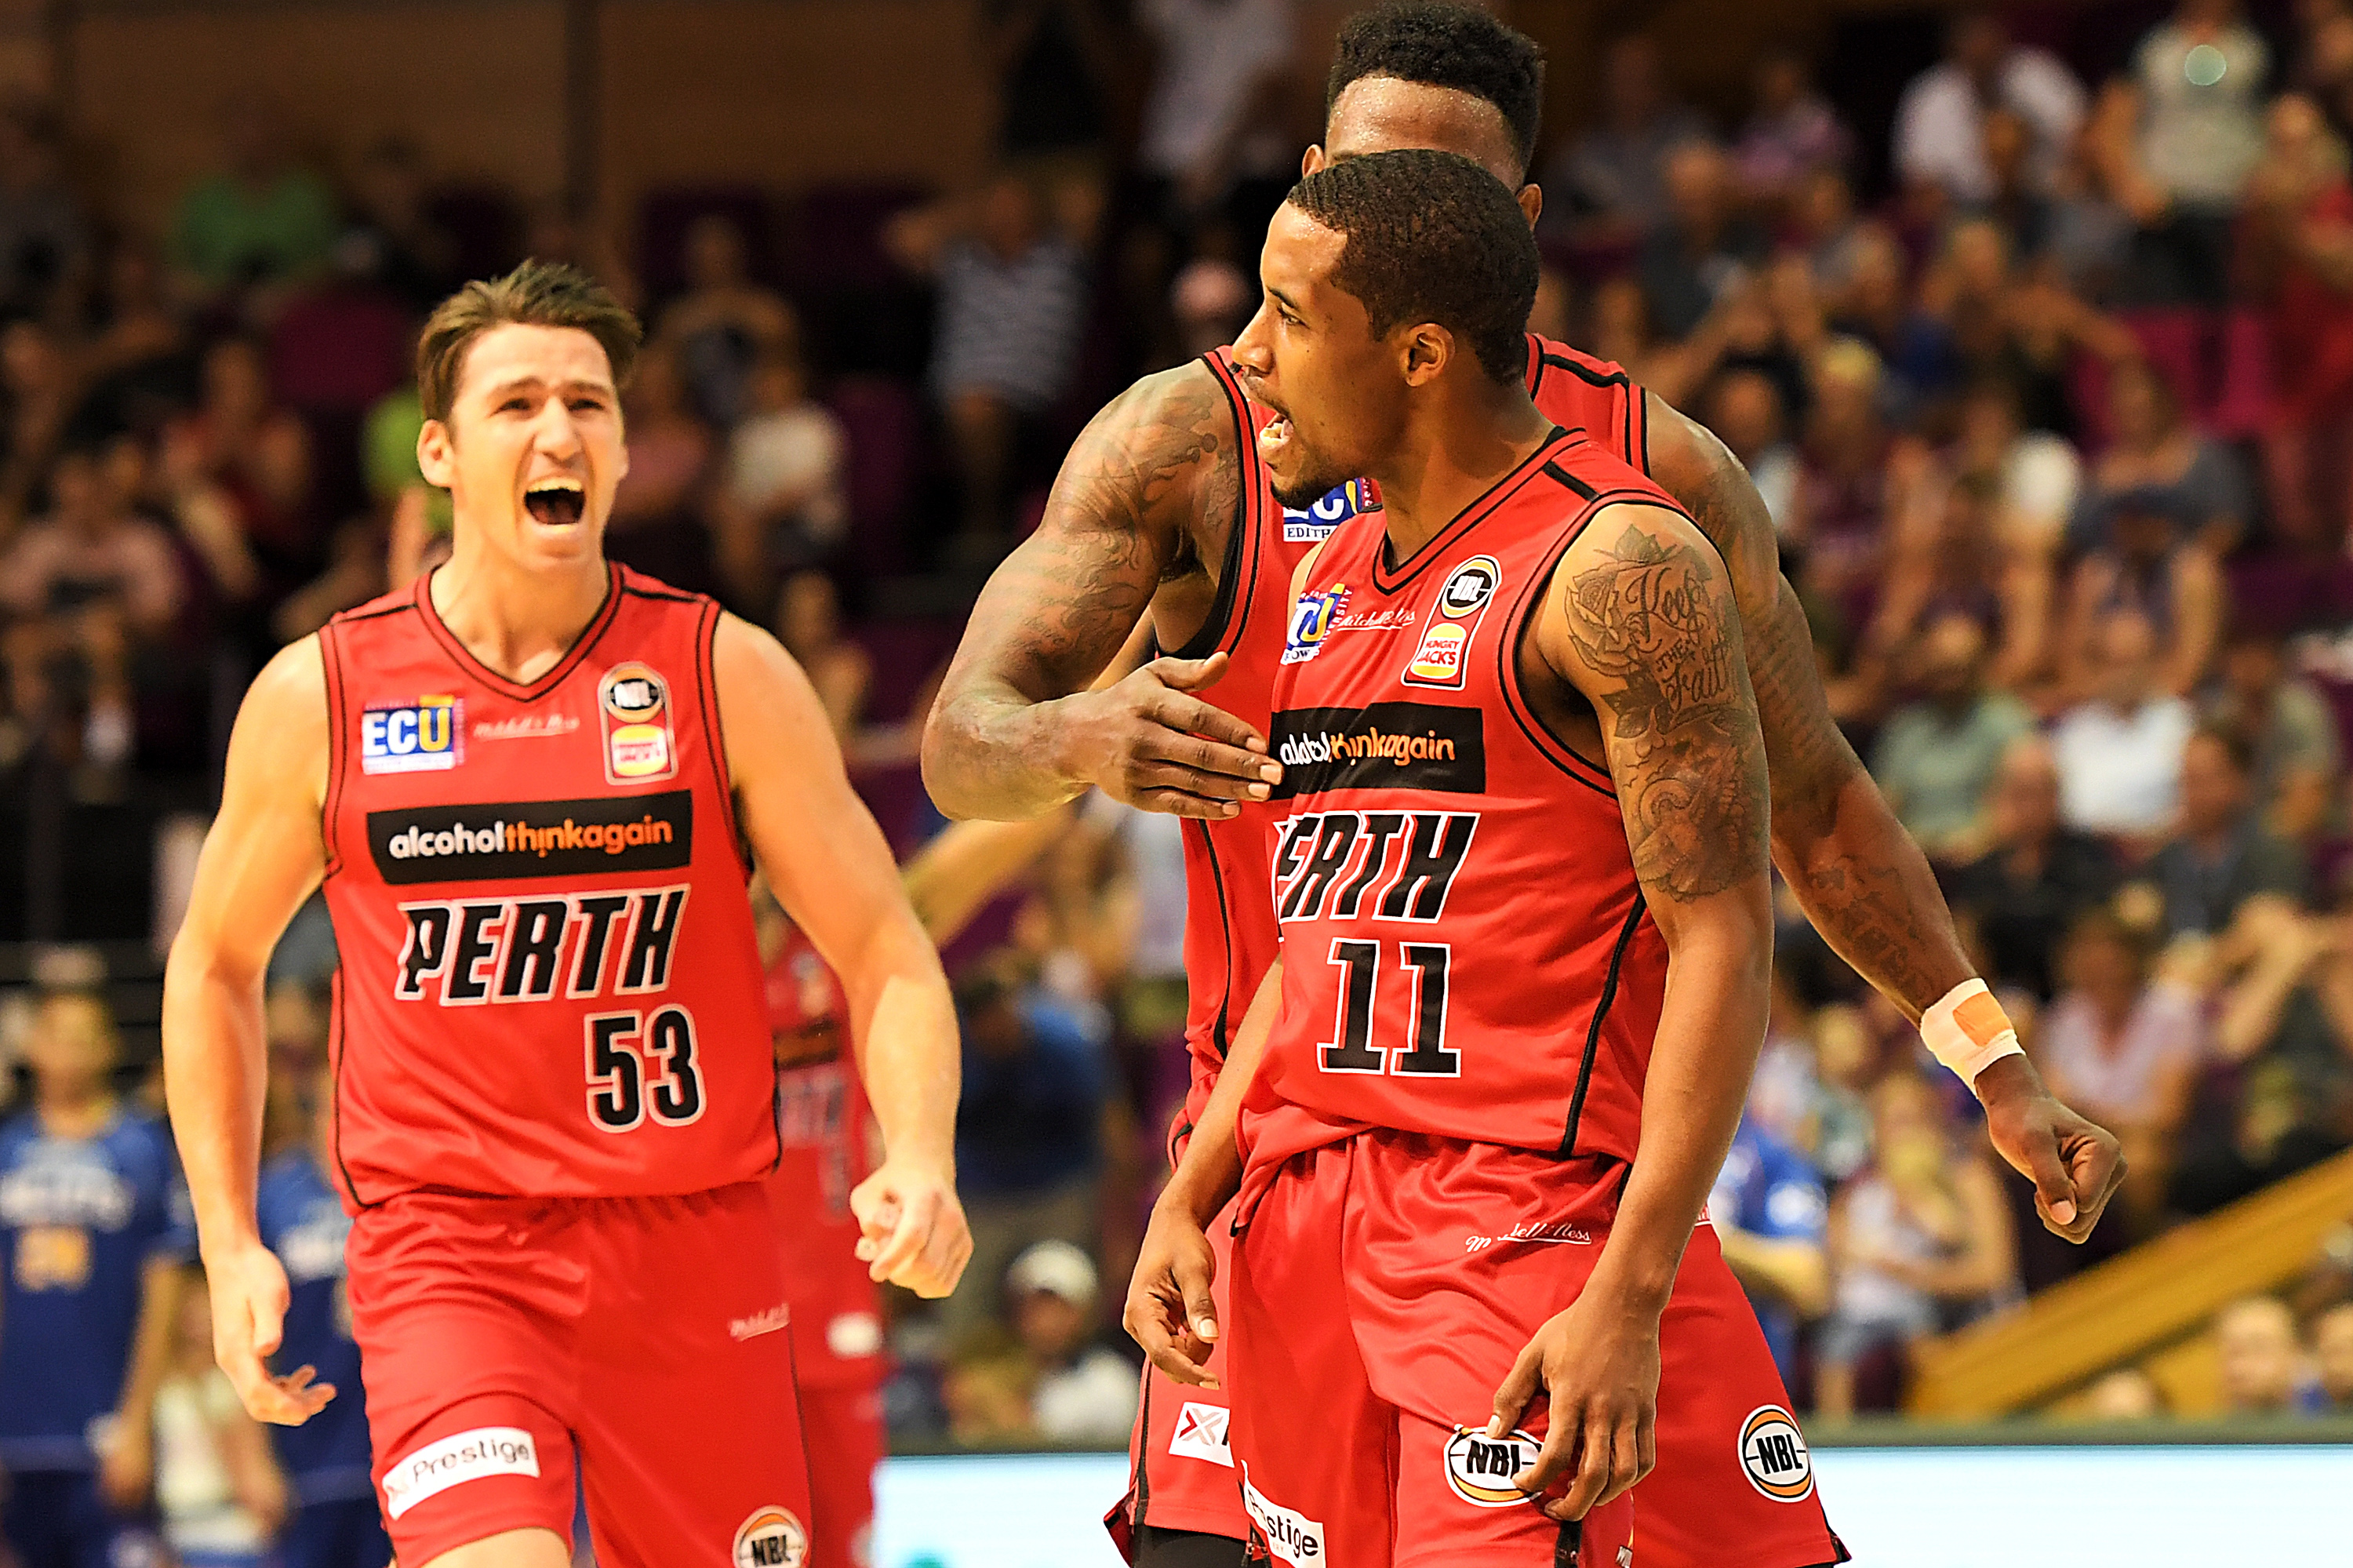 January 14, 2018 - Brisbane, Quensland, Australia - Bryce Cotton of the Wildcats (#11) celebrates during the round fourteen NBL match between the Brisbane Bullets and the Perth Wildcats at the Brisbane Convention and Exhibition Centre on January 14, 2018 in Brisbane, Australia. (Credit Image: © Albert Perez/ZUMA Wire)